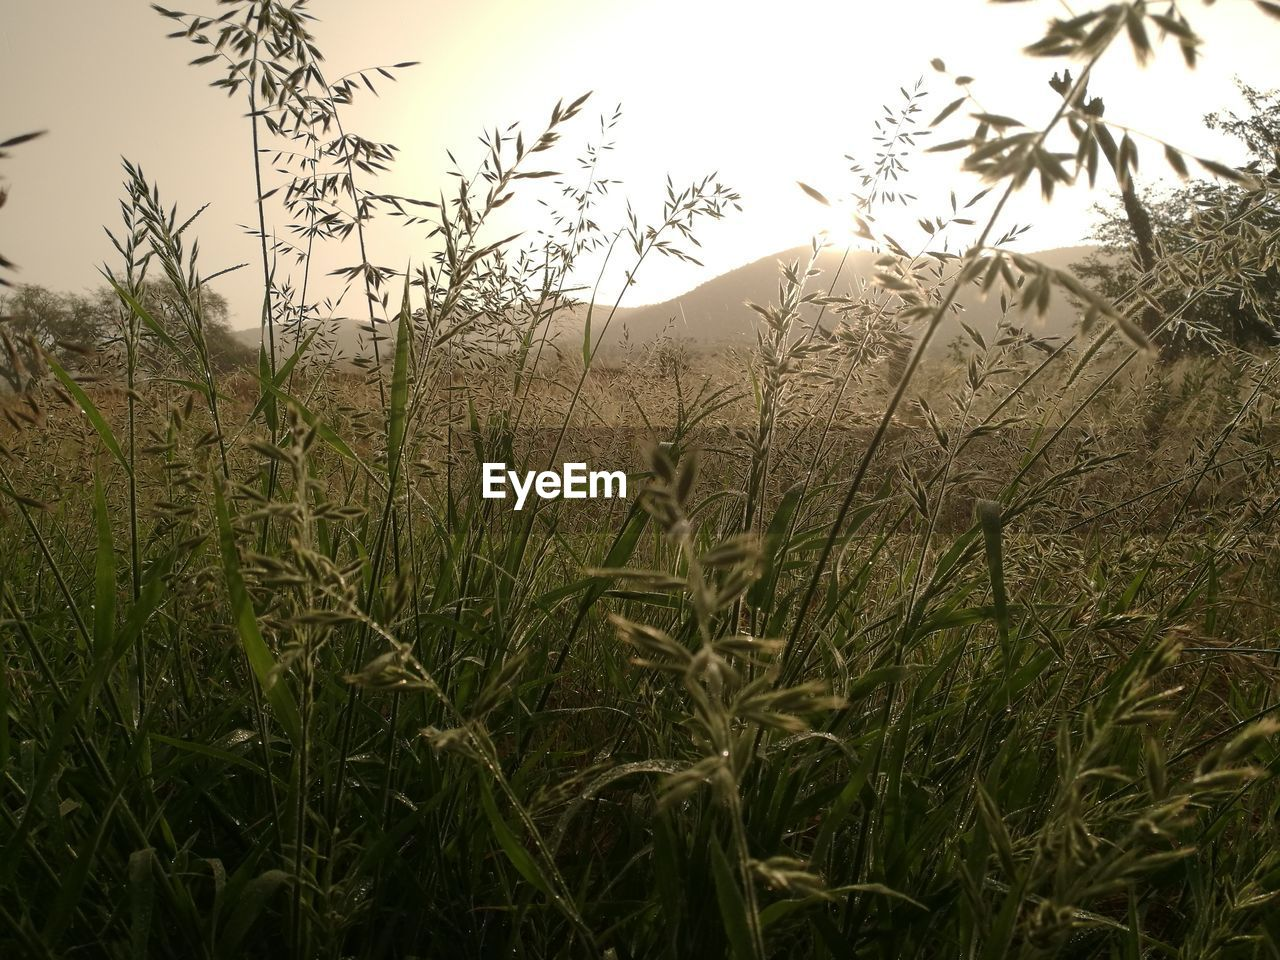 growth, nature, grass, field, crop, tranquility, tranquil scene, agriculture, no people, plant, outdoors, cereal plant, day, landscape, beauty in nature, wheat, scenics, rural scene, sky, water, rice paddy, clear sky, close-up